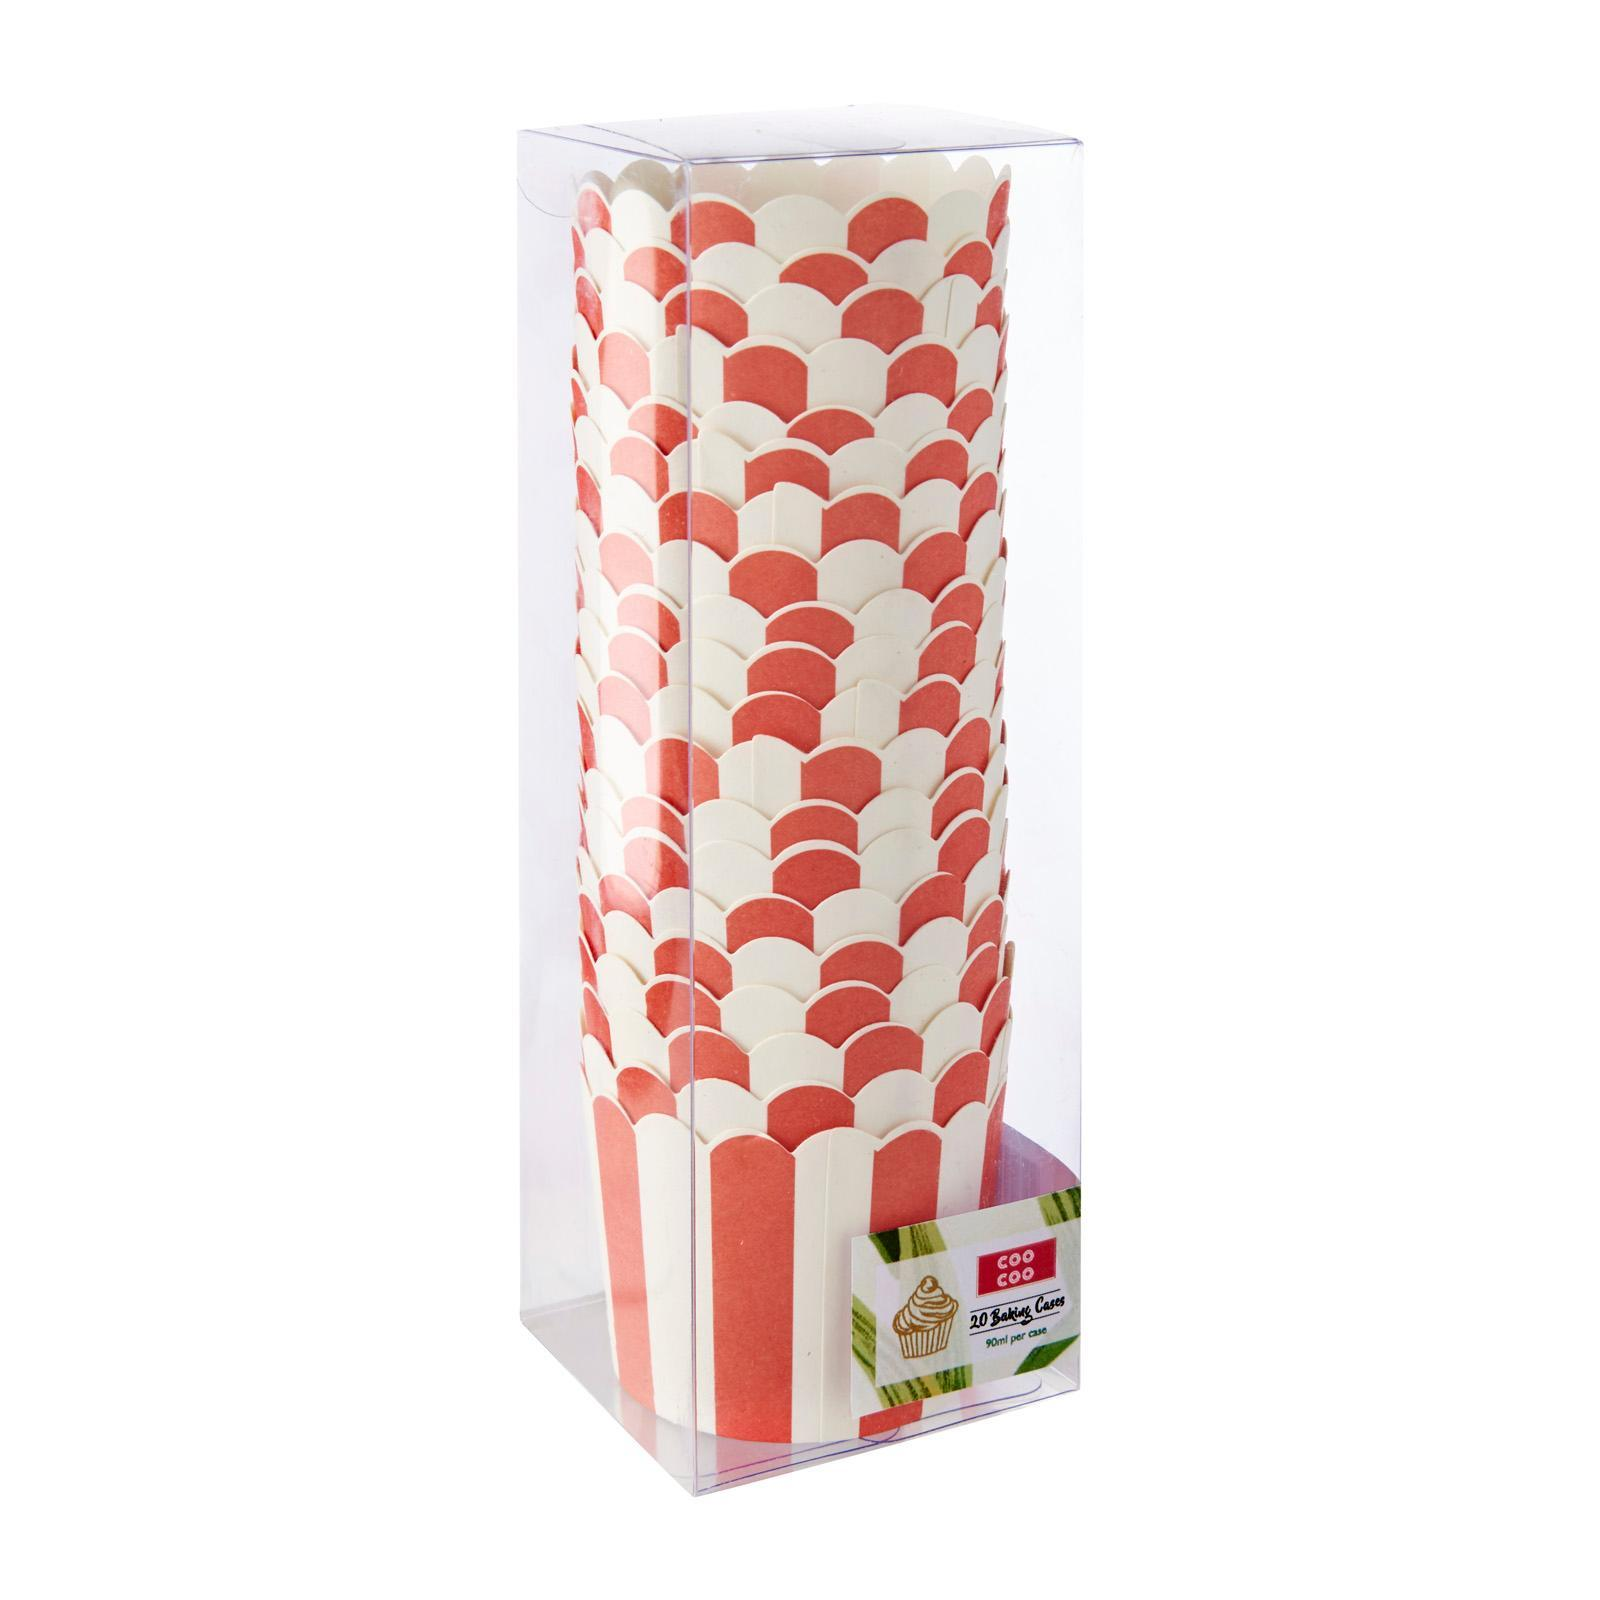 CooCoo Muffin And Cupcake Baking Cases Fire Engine Red Stripes